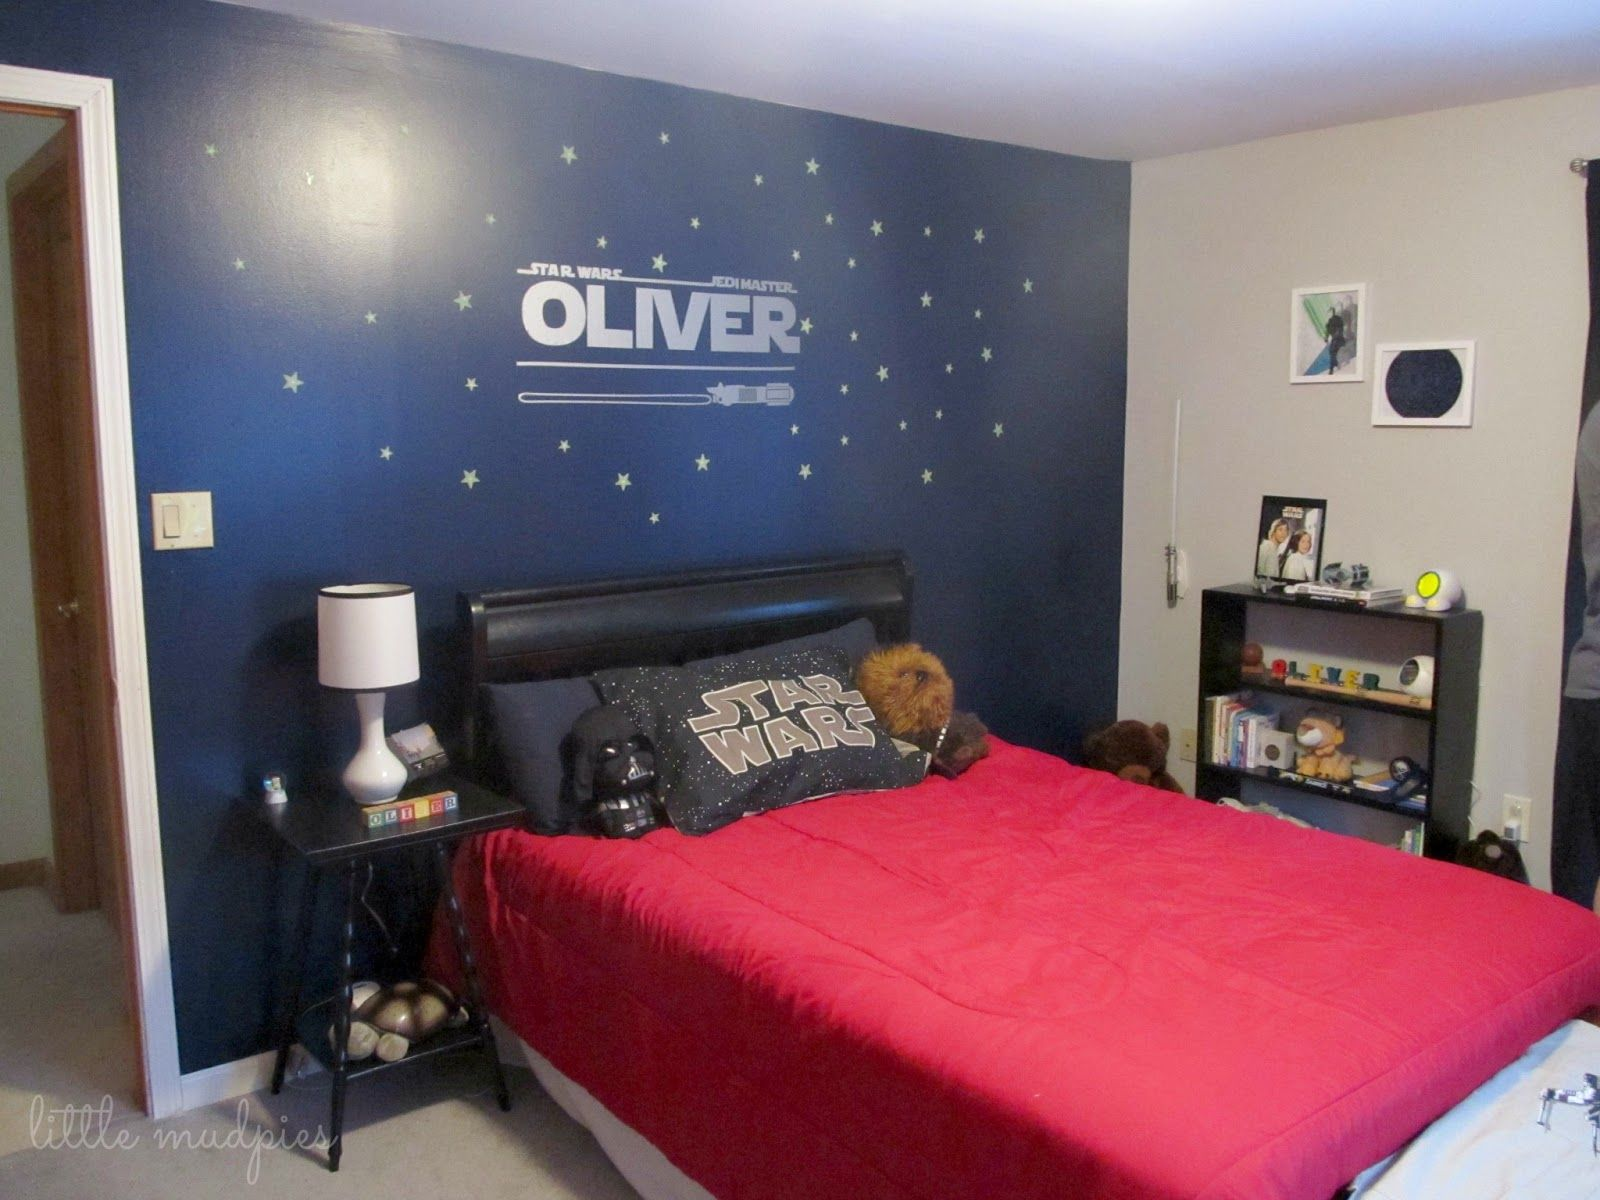 Star Wars Themed Bedroom Via Little Mudpies One Dark Wall